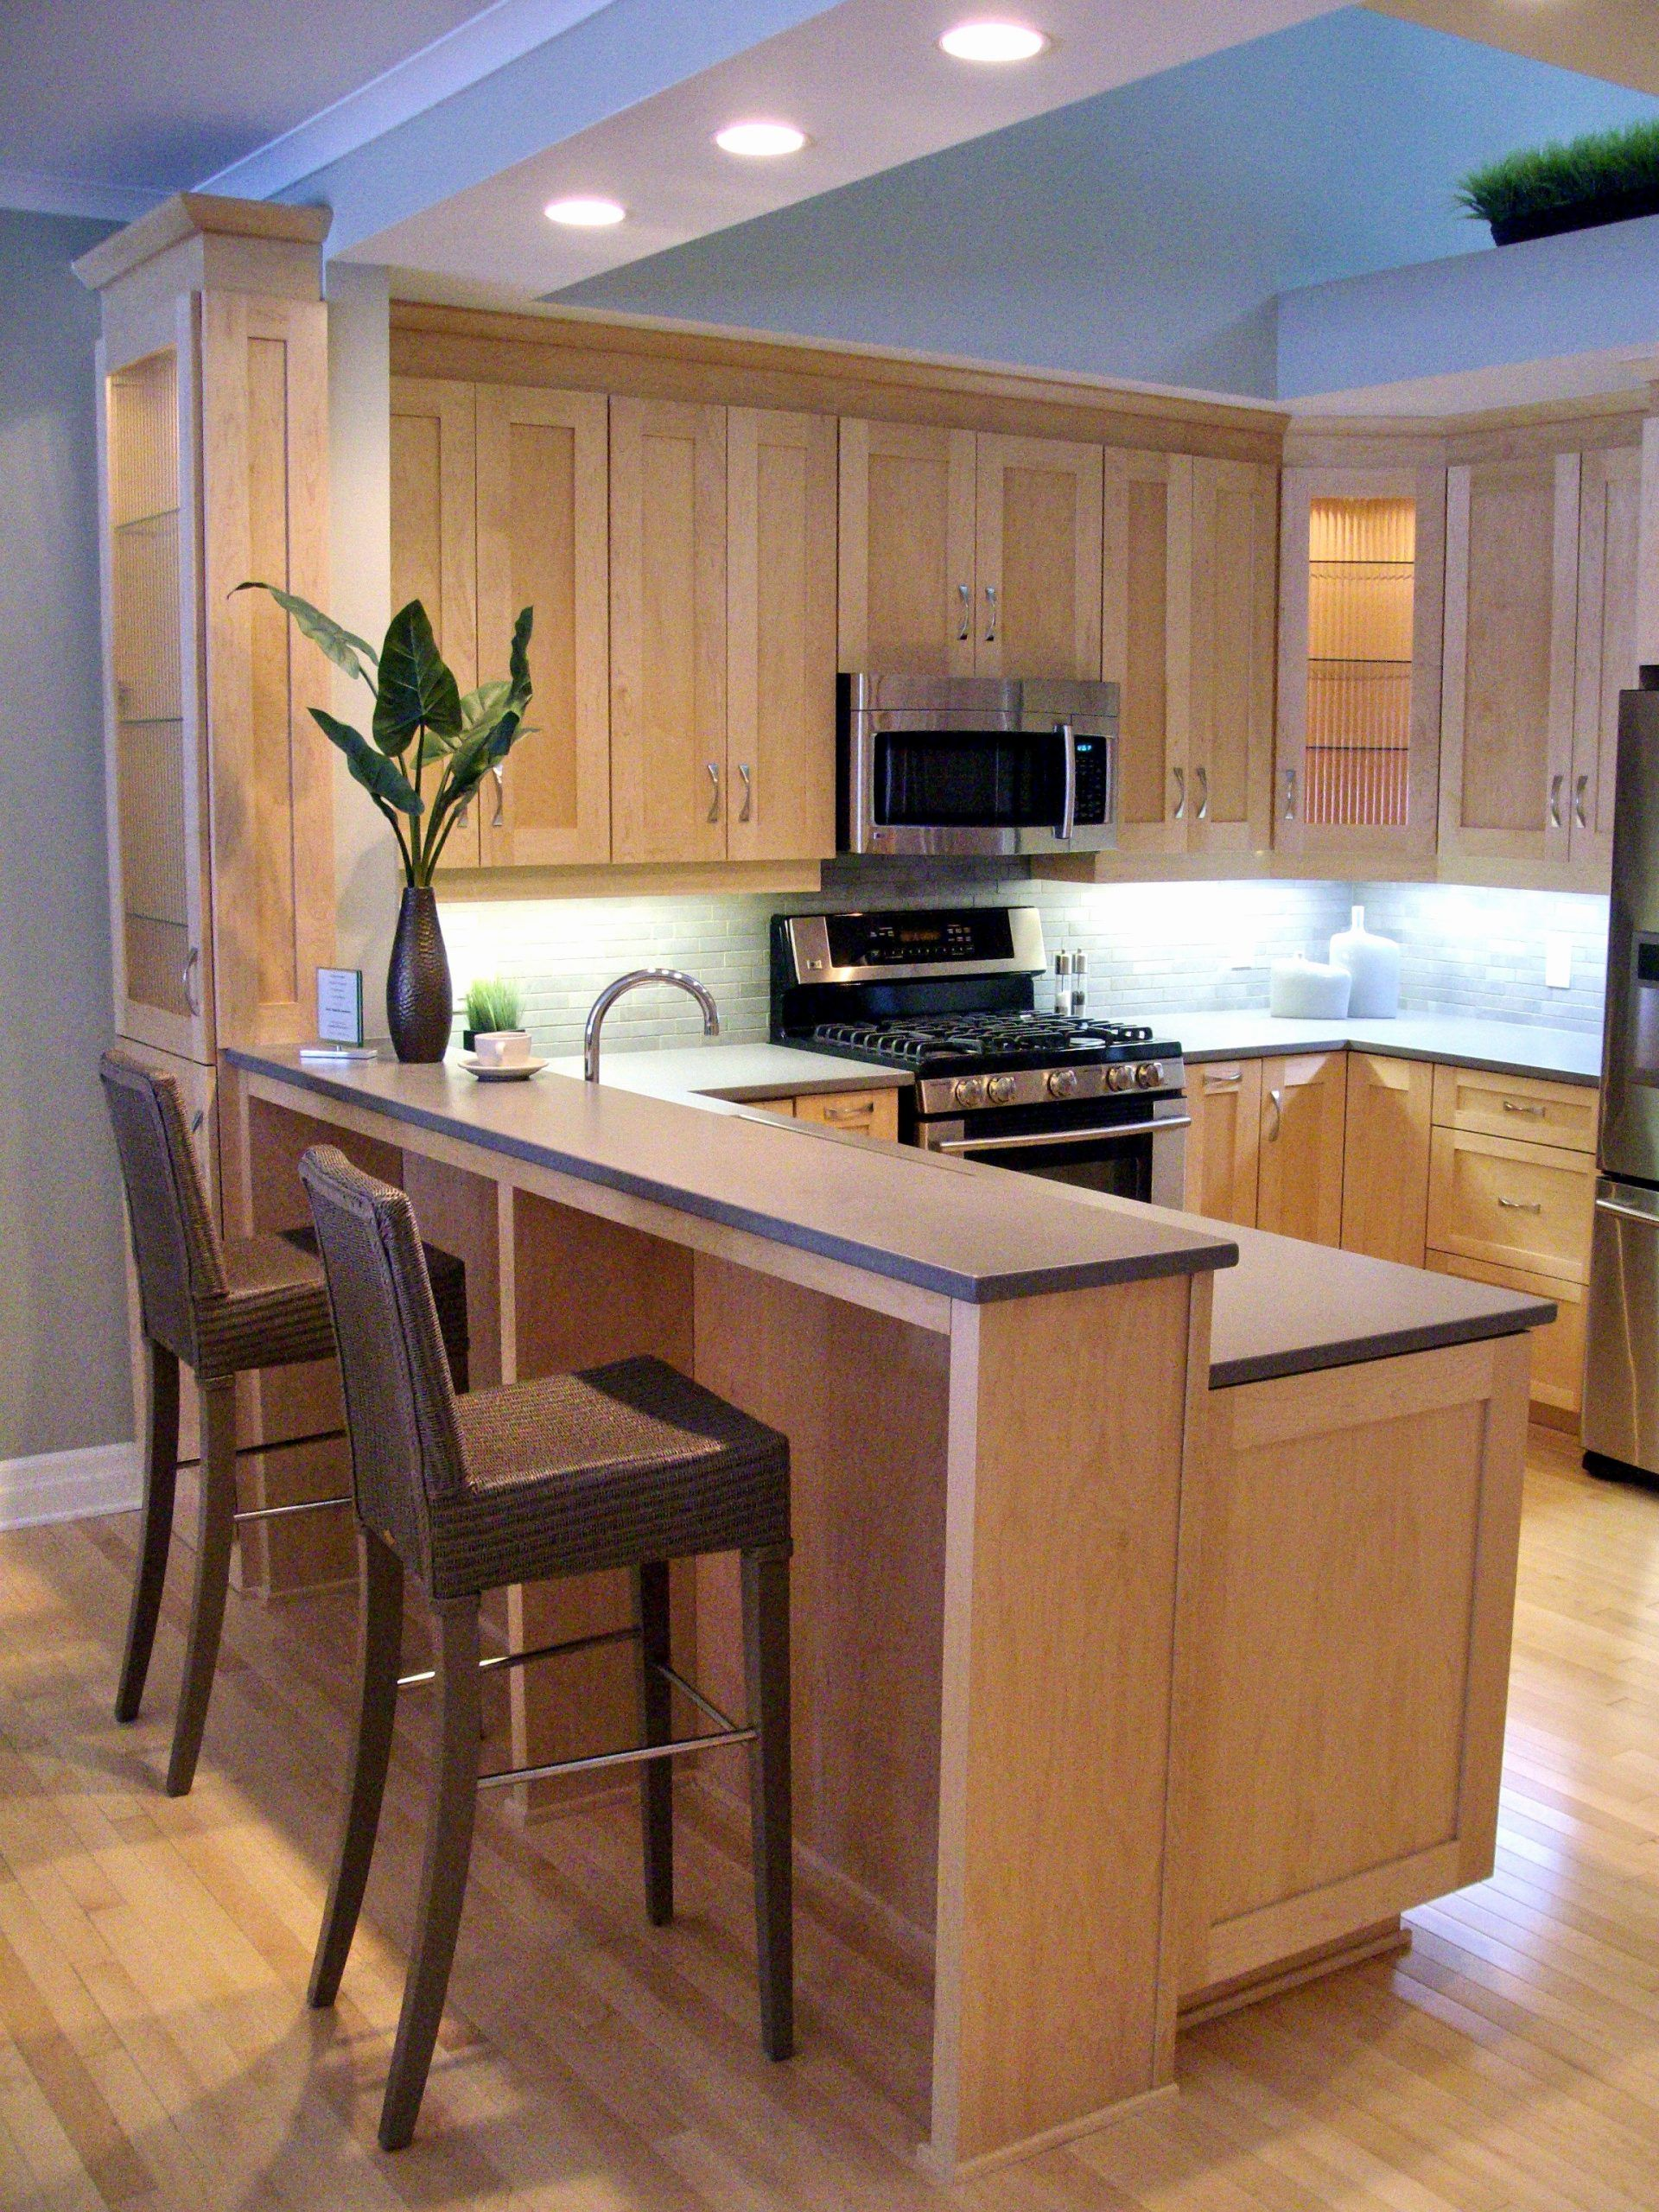 Kitchen Bar Countertop Ideas Inspirational Natural Maple Shaker Cabinets With Grey Silestone Qua In 2020 Kitchen Renovation Maple Kitchen Cabinets New Kitchen Cabinets